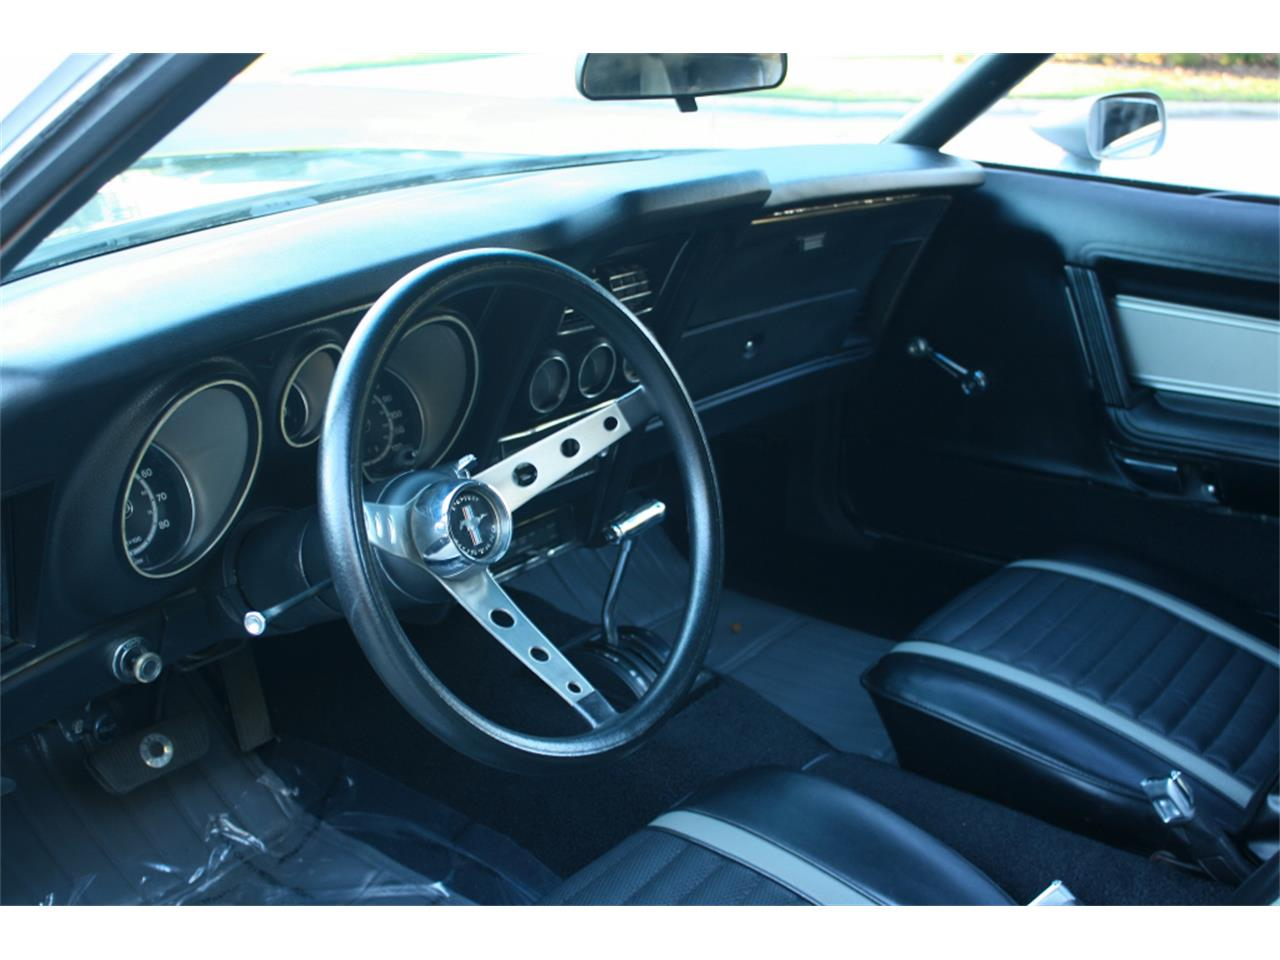 Large Picture of Classic '73 Ford Mustang - $17,500.00 Offered by MJC Classic Cars - MA11